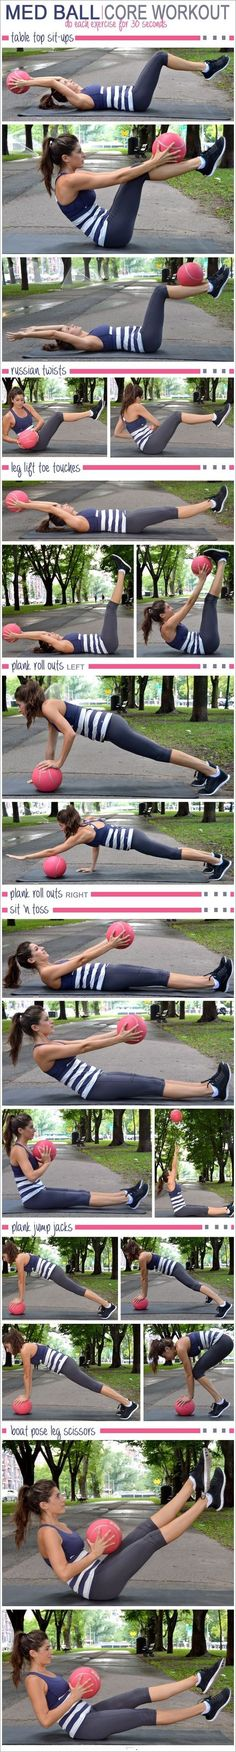 Get ready to work your core with these dynamic moves using the stability ball. This core stability ball circuit was designed as a workout for beginners.   #weightloss #loseweight #howtoloseweight #cor